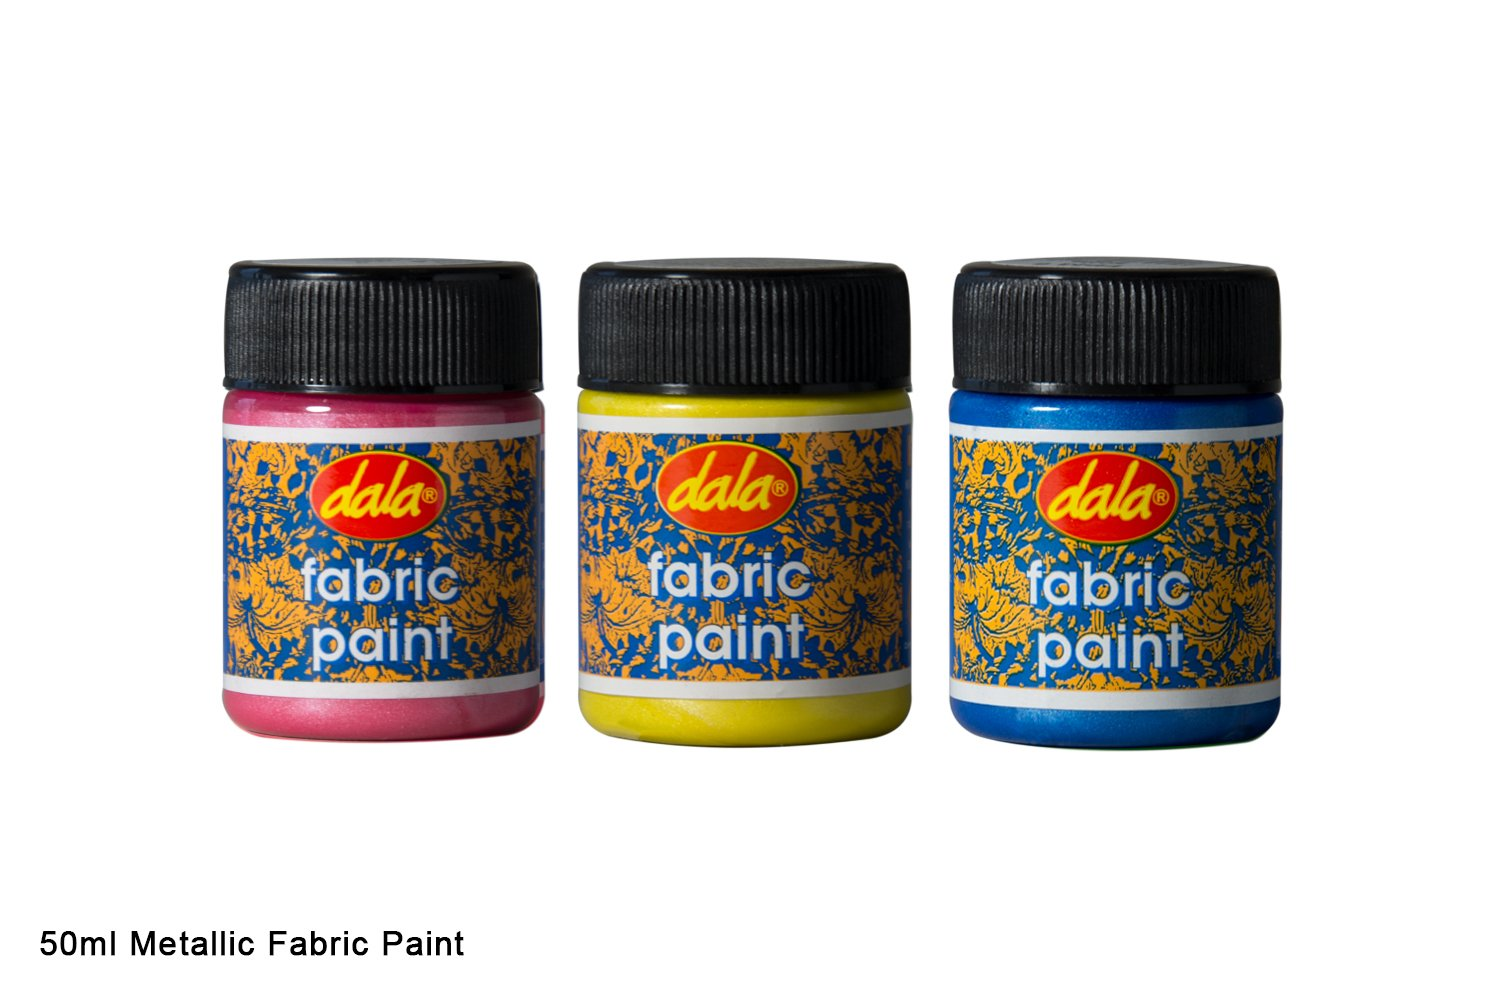 Metallic Fabric Paint